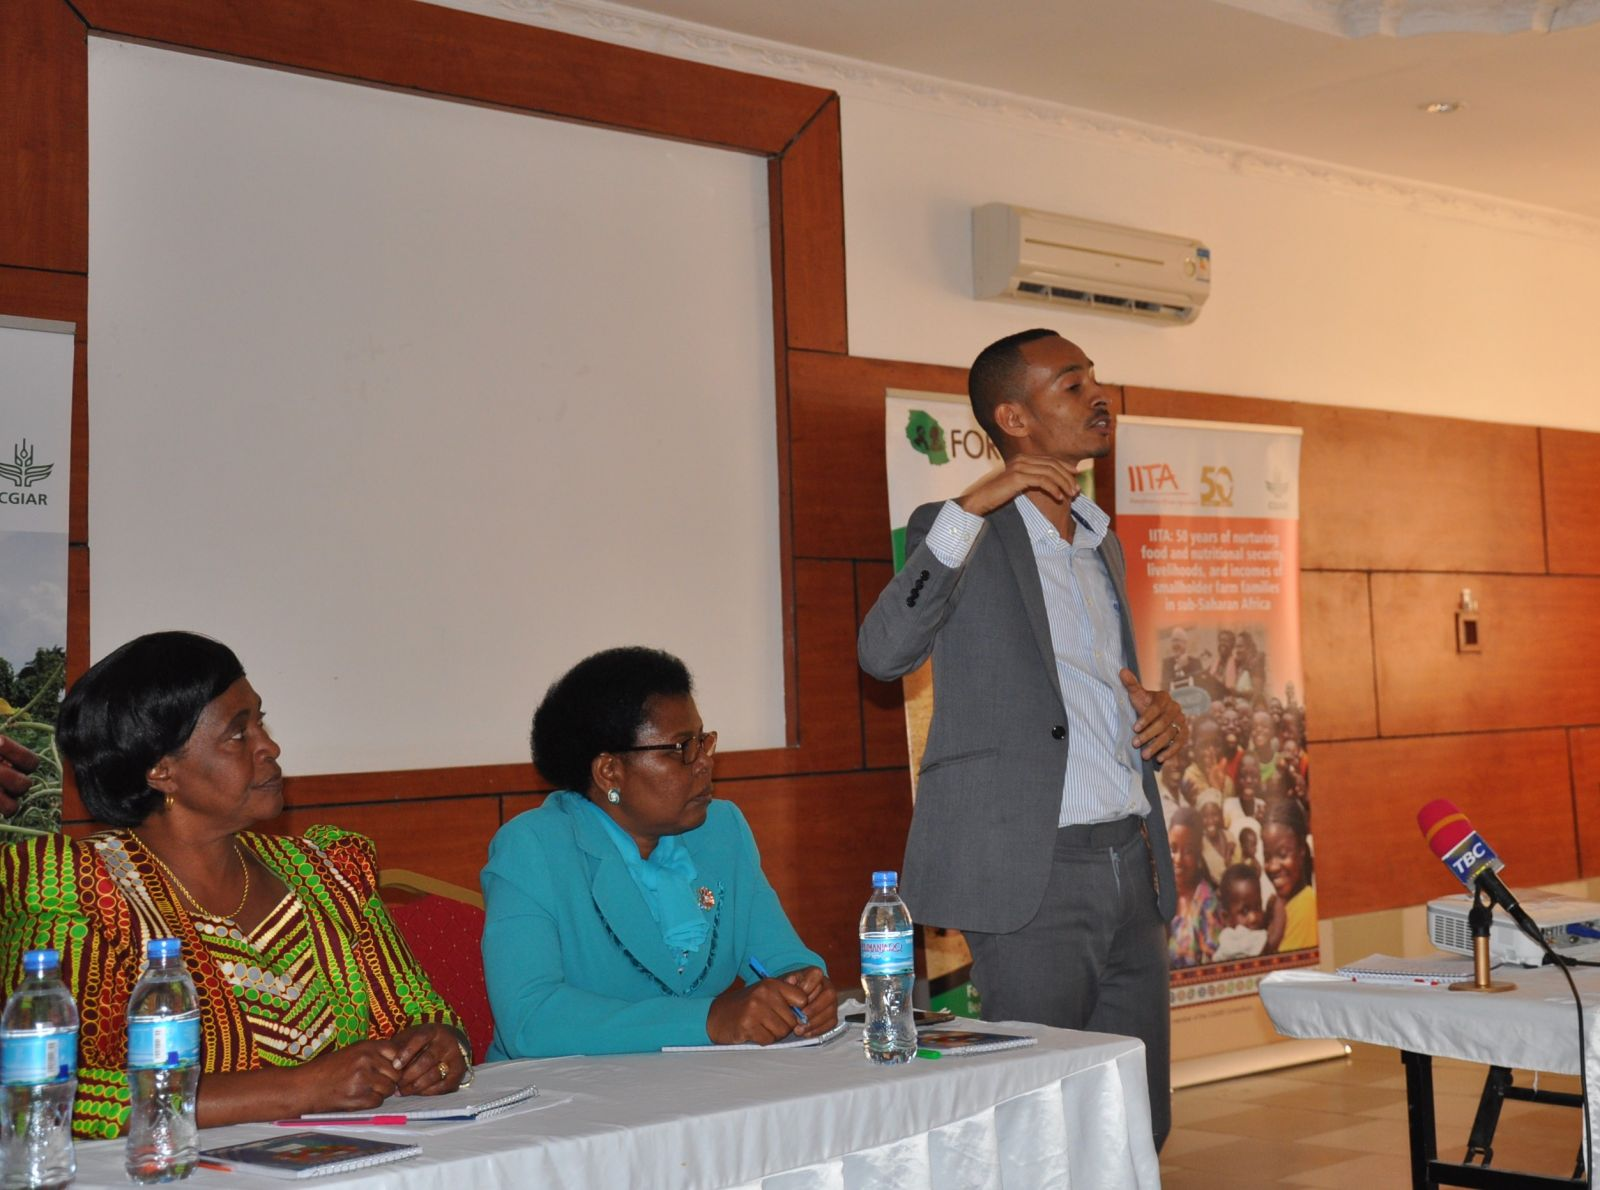 Mr. Fazal Issa from IITA talks presents on climate change to Tanzanian MPs